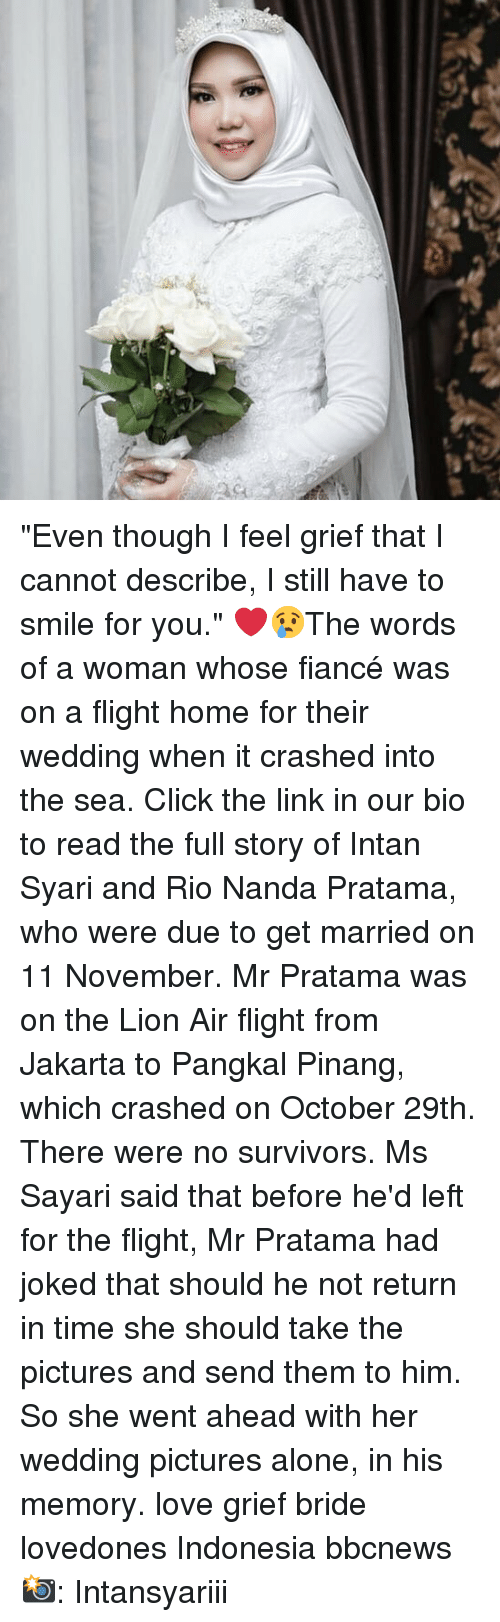 """into-the-sea: """"Even though I feel grief that I cannot describe, I still have to smile for you."""" ❤️😢The words of a woman whose fiancé was on a flight home for their wedding when it crashed into the sea. Click the link in our bio to read the full story of Intan Syari and Rio Nanda Pratama, who were due to get married on 11 November. Mr Pratama was on the Lion Air flight from Jakarta to Pangkal Pinang, which crashed on October 29th. There were no survivors. Ms Sayari said that before he'd left for the flight, Mr Pratama had joked that should he not return in time she should take the pictures and send them to him. So she went ahead with her wedding pictures alone, in his memory. love grief bride lovedones Indonesia bbcnews 📸: Intansyariii"""